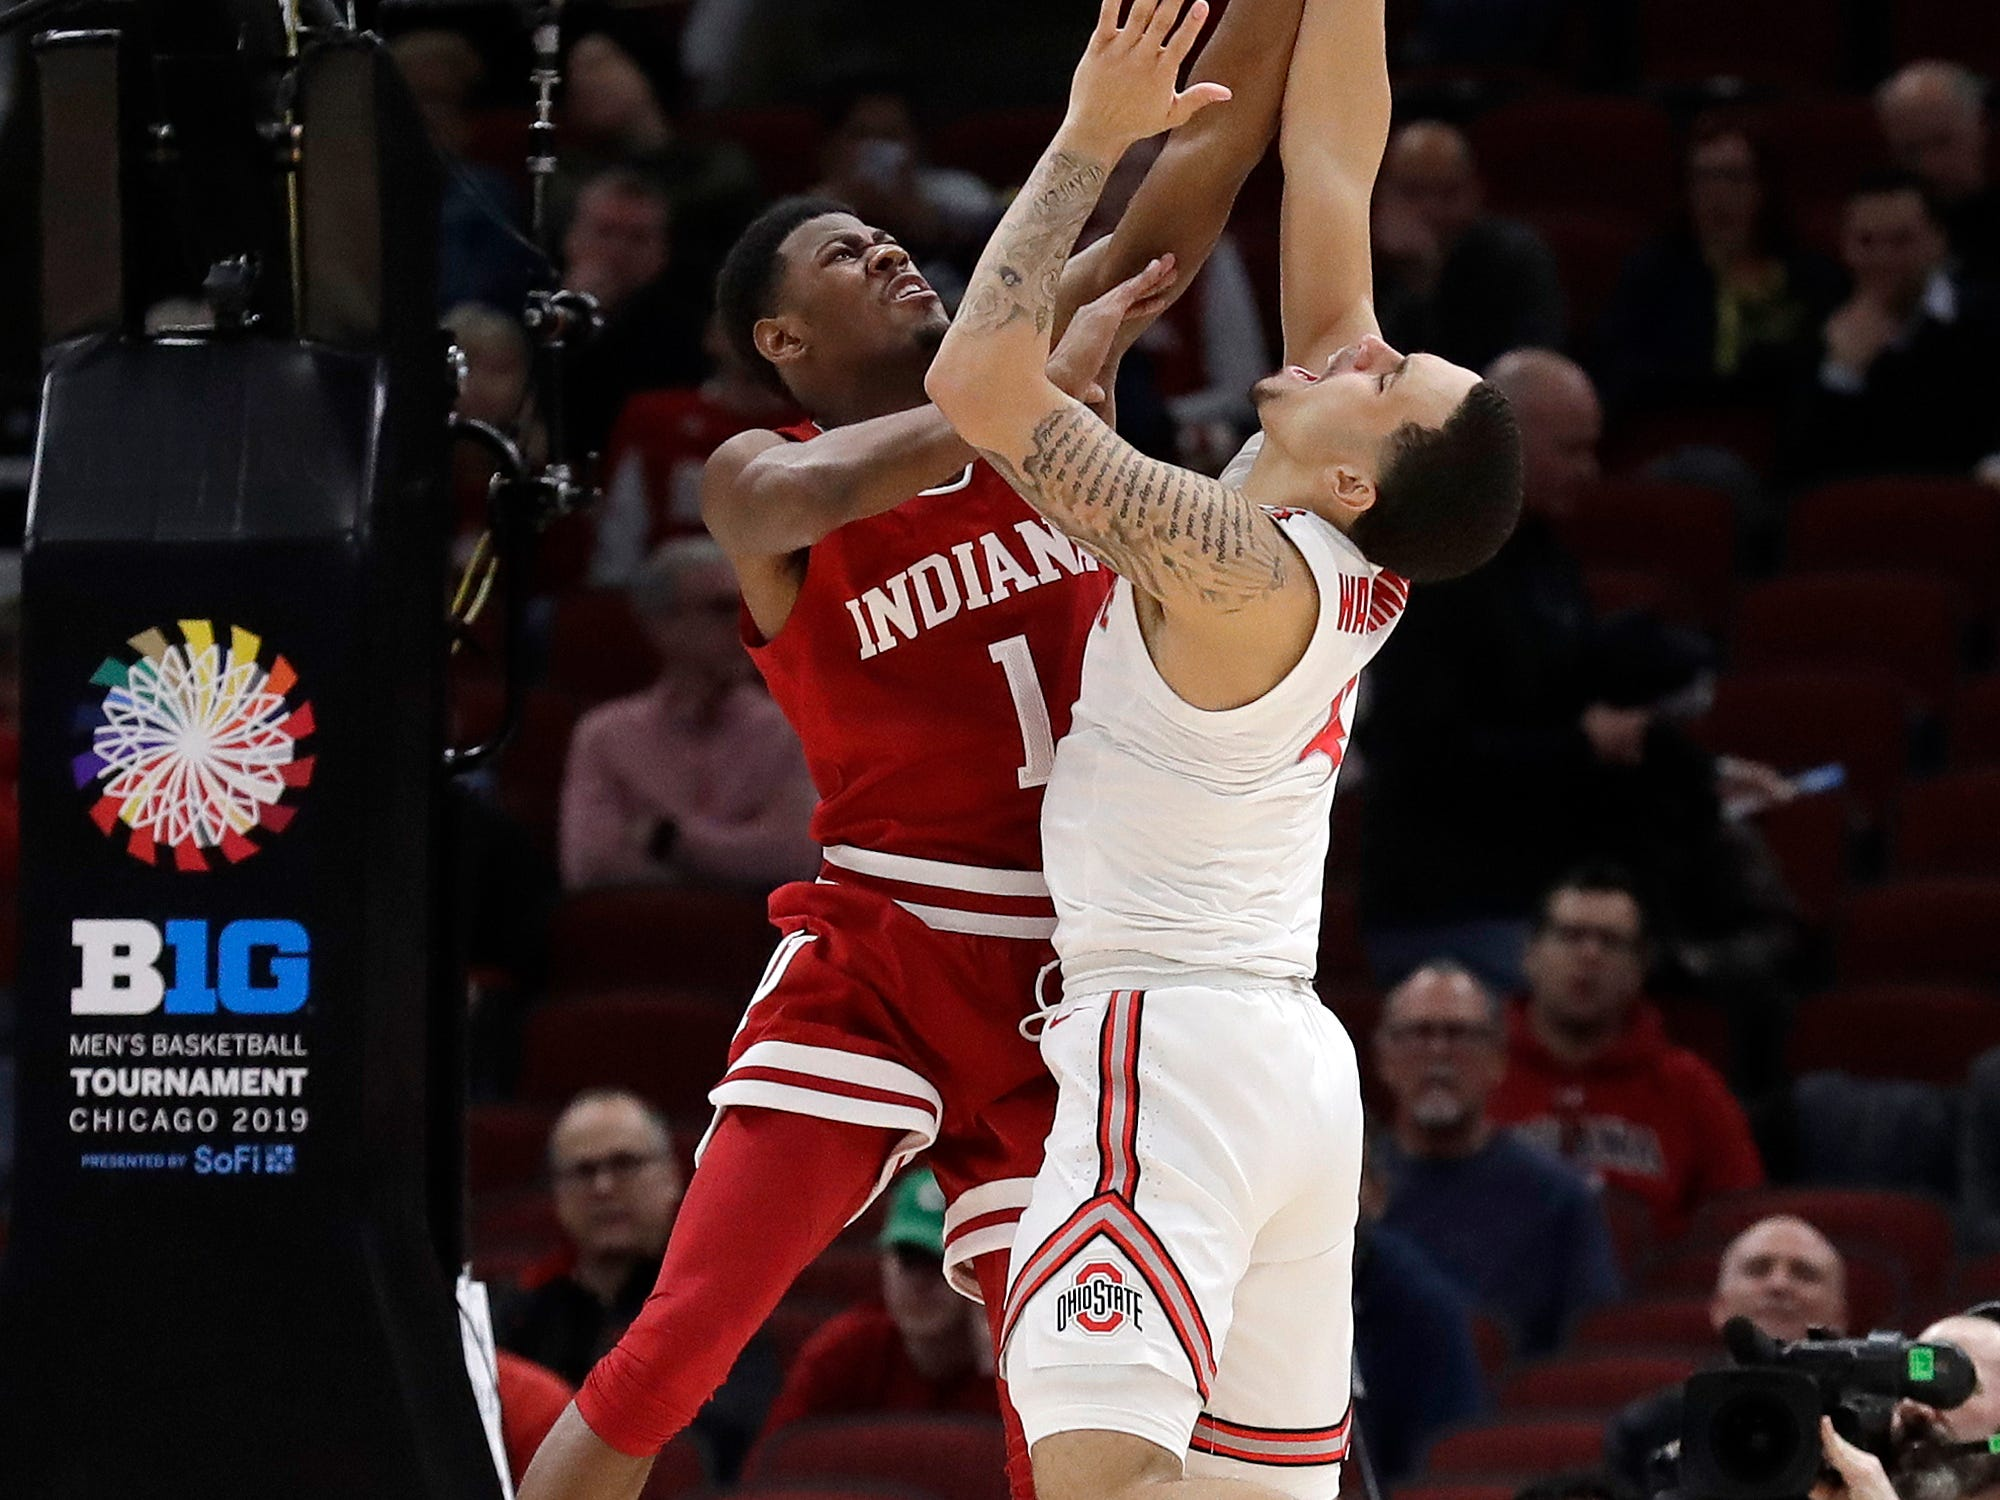 Indiana's Aljami Durham (1) blocks a shot by Ohio State's Duane Washington Jr. (4) during the first half of an NCAA college basketball game in the second round of the Big Ten Conference tournament, Thursday, March 14, 2019, in Chicago. (AP Photo/Nam Y. Huh)